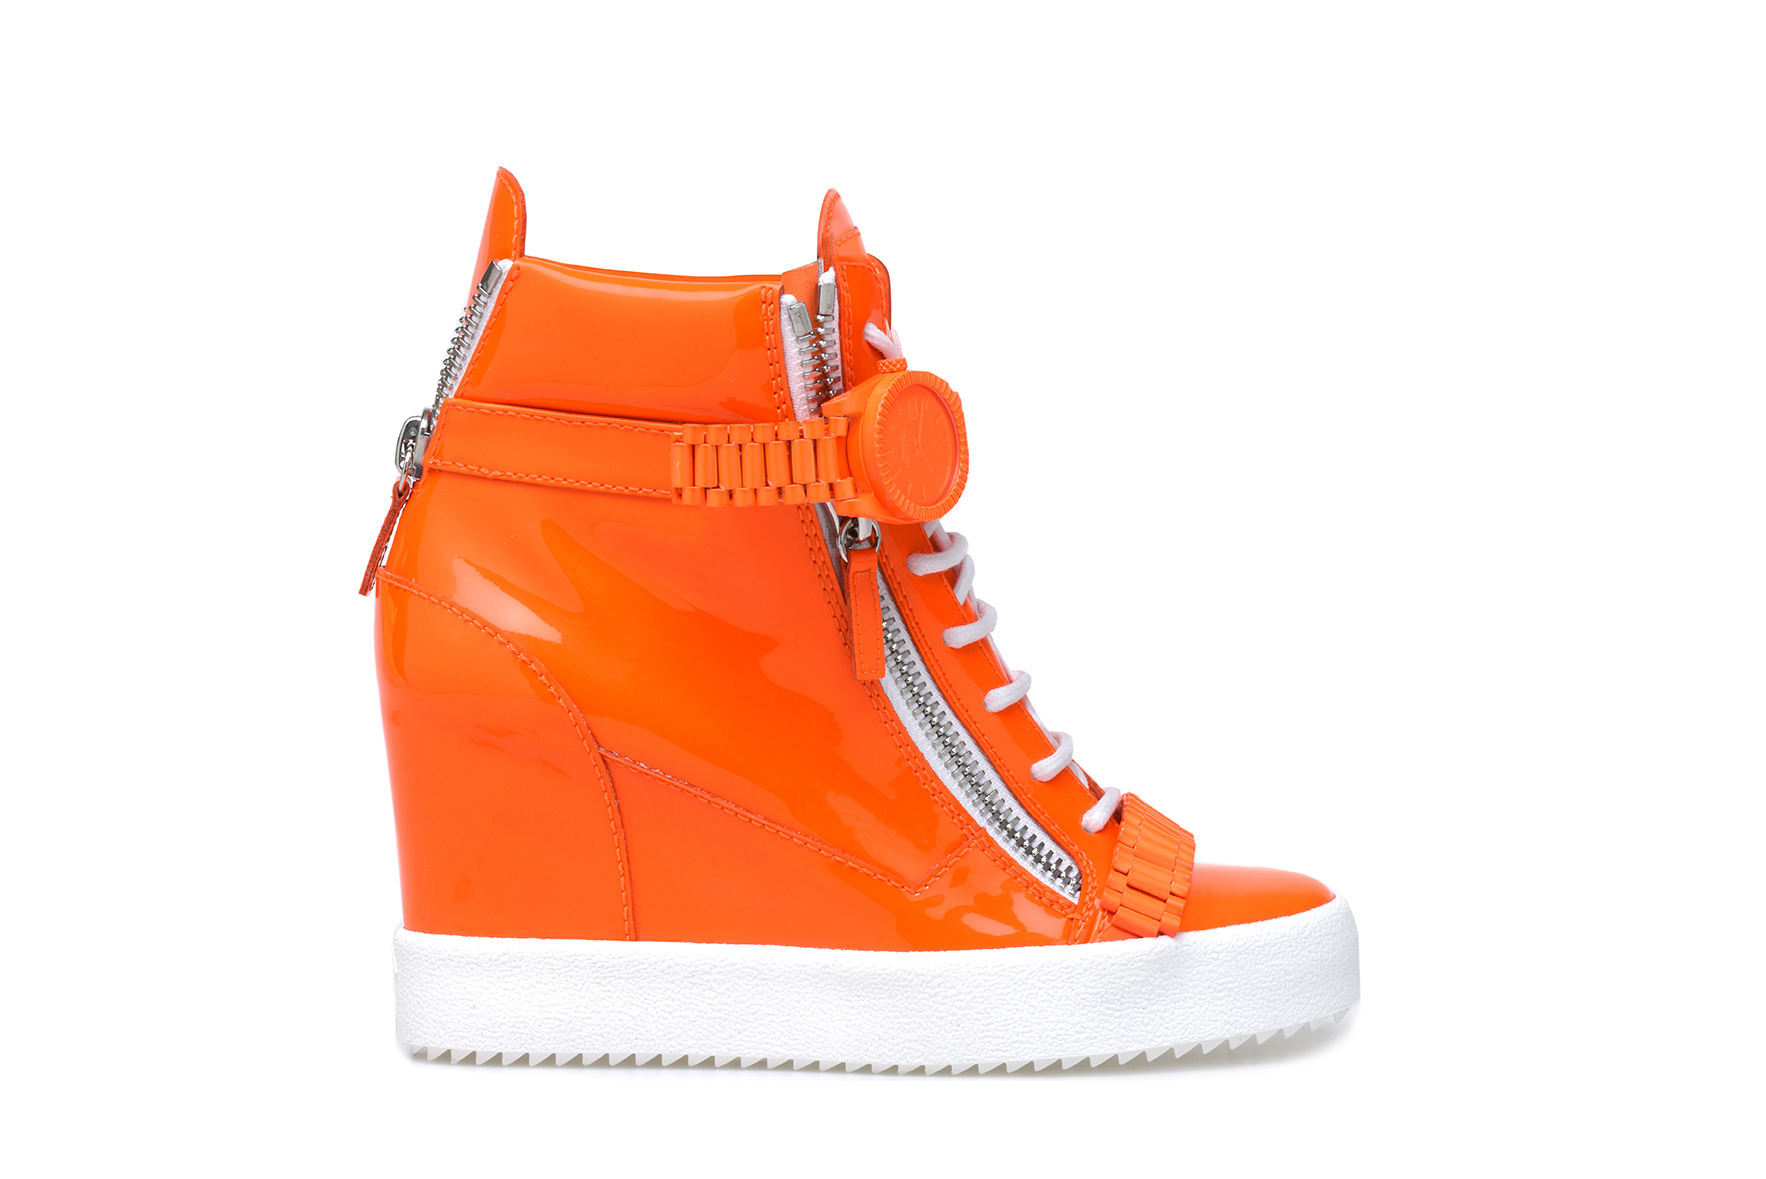 Neon Orange Sneaker. COMING JULY.